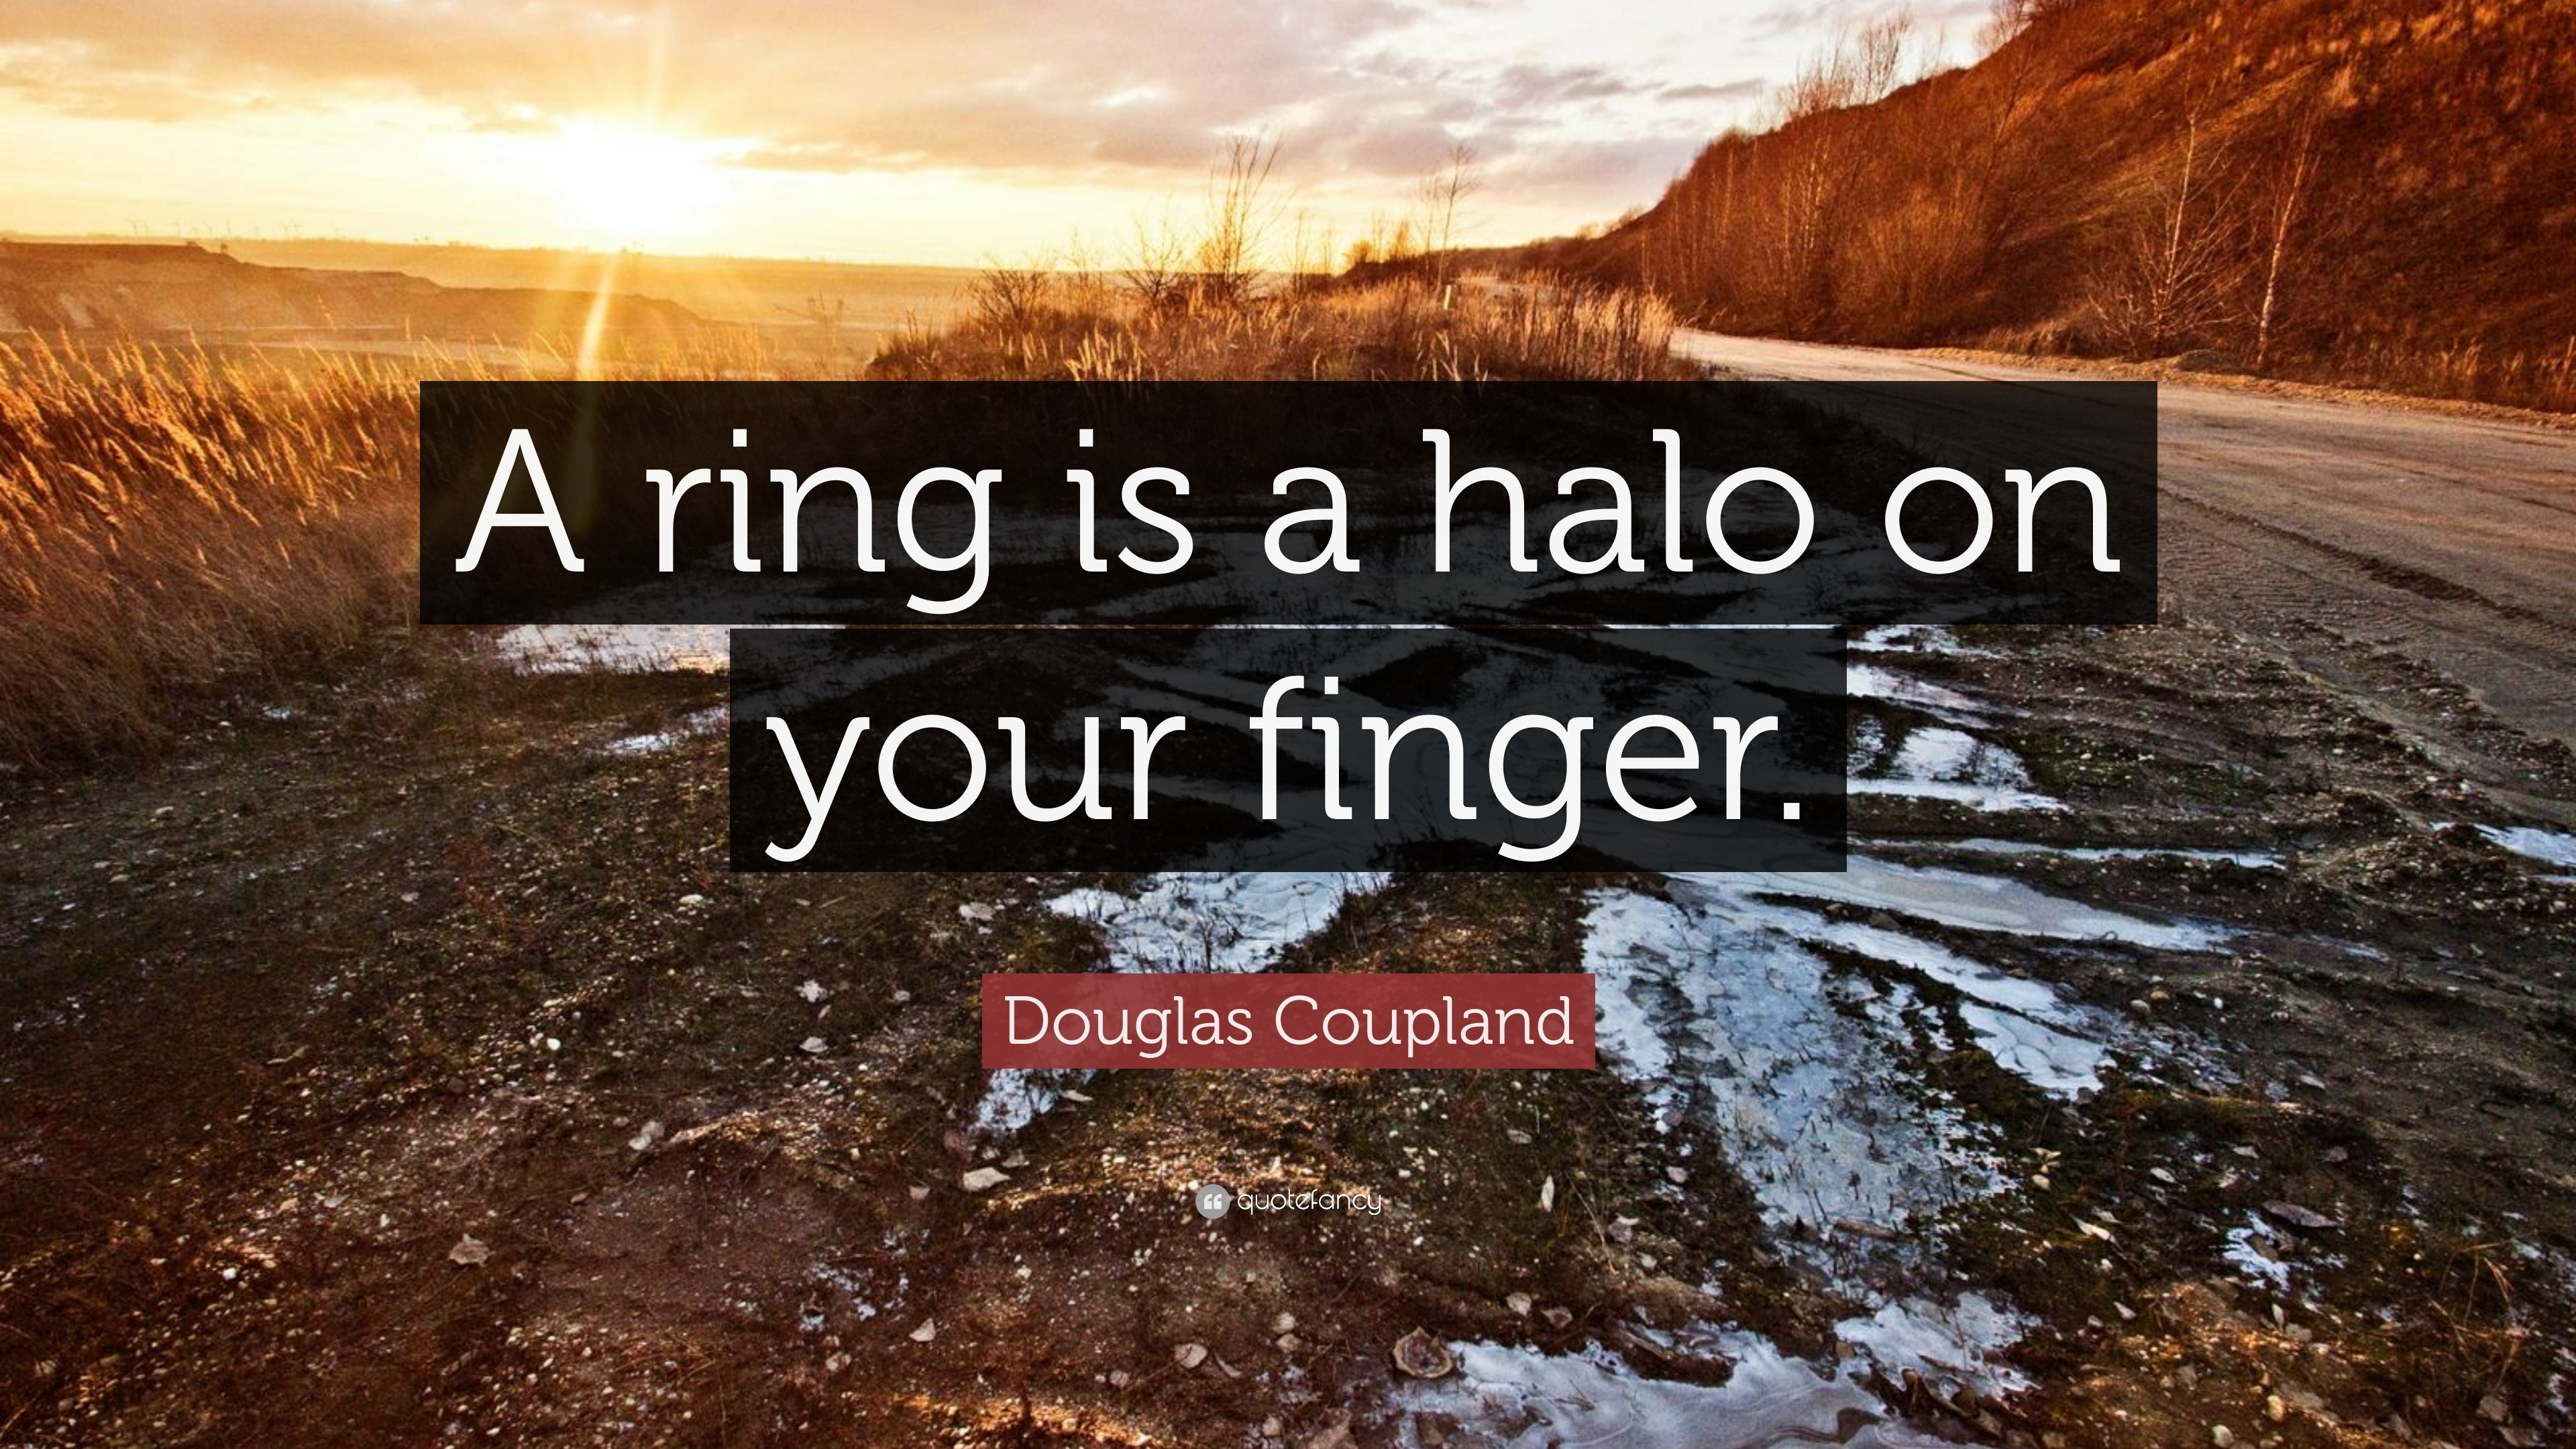 """Res: 3840x2160, Douglas Coupland Quote: """"A ring is a halo on your finger."""""""